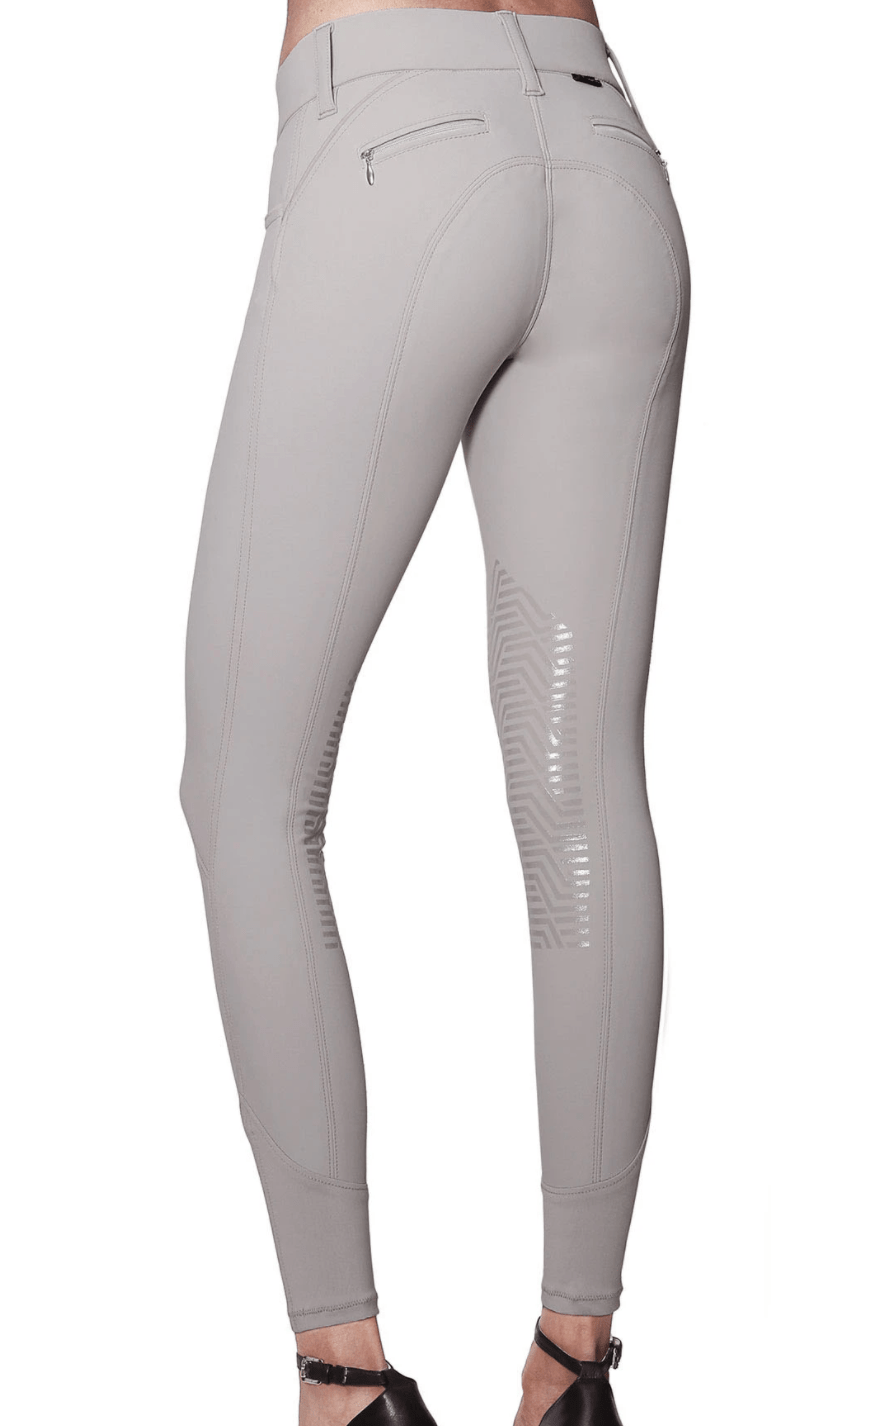 GhoDho Breeches GhoDho Aubrie Pro Beige Breeches equestrian team apparel online tack store mobile tack store custom farm apparel custom show stable clothing equestrian lifestyle horse show clothing riding clothes horses equestrian tack store